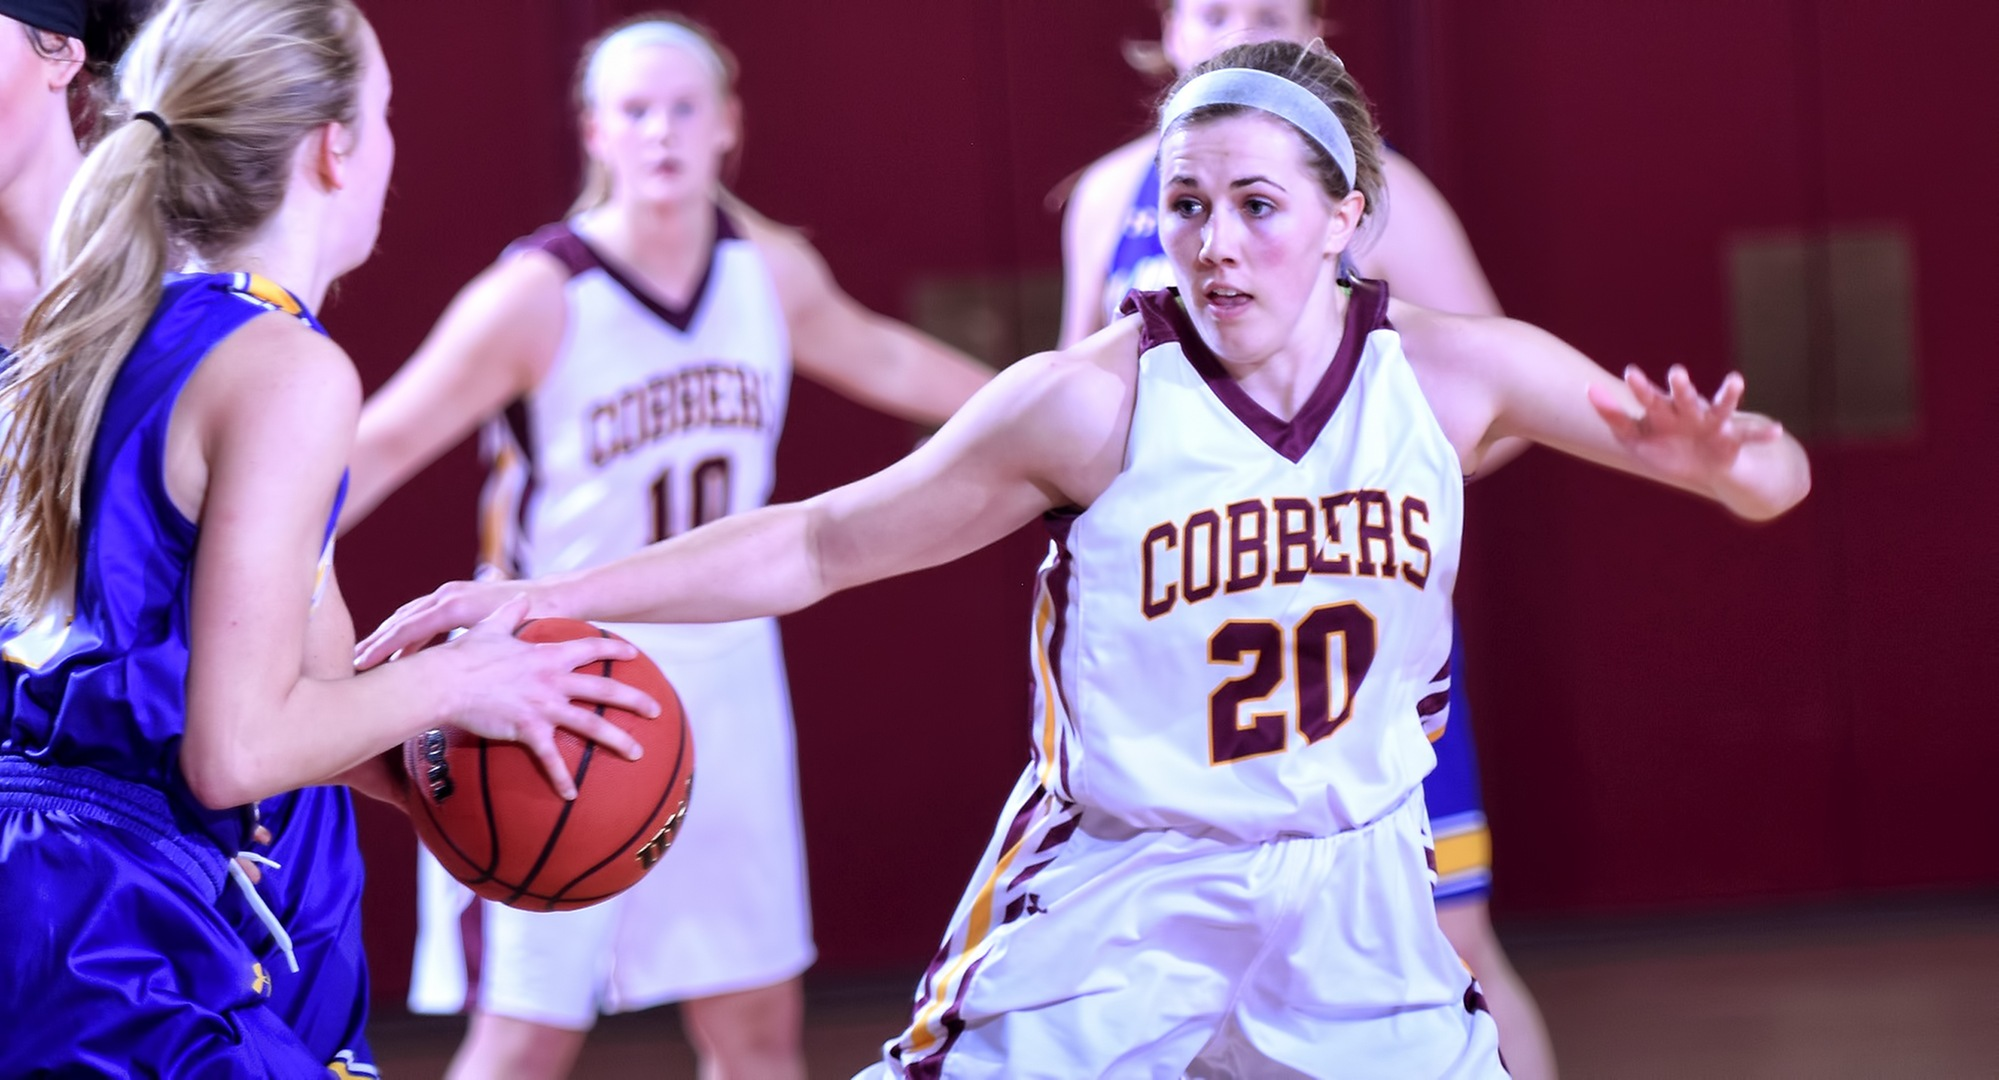 Freshman Emily Beseman had a game-high 21 points and added four rebounds and two assists in the Cobbers' game at St. Thomas.